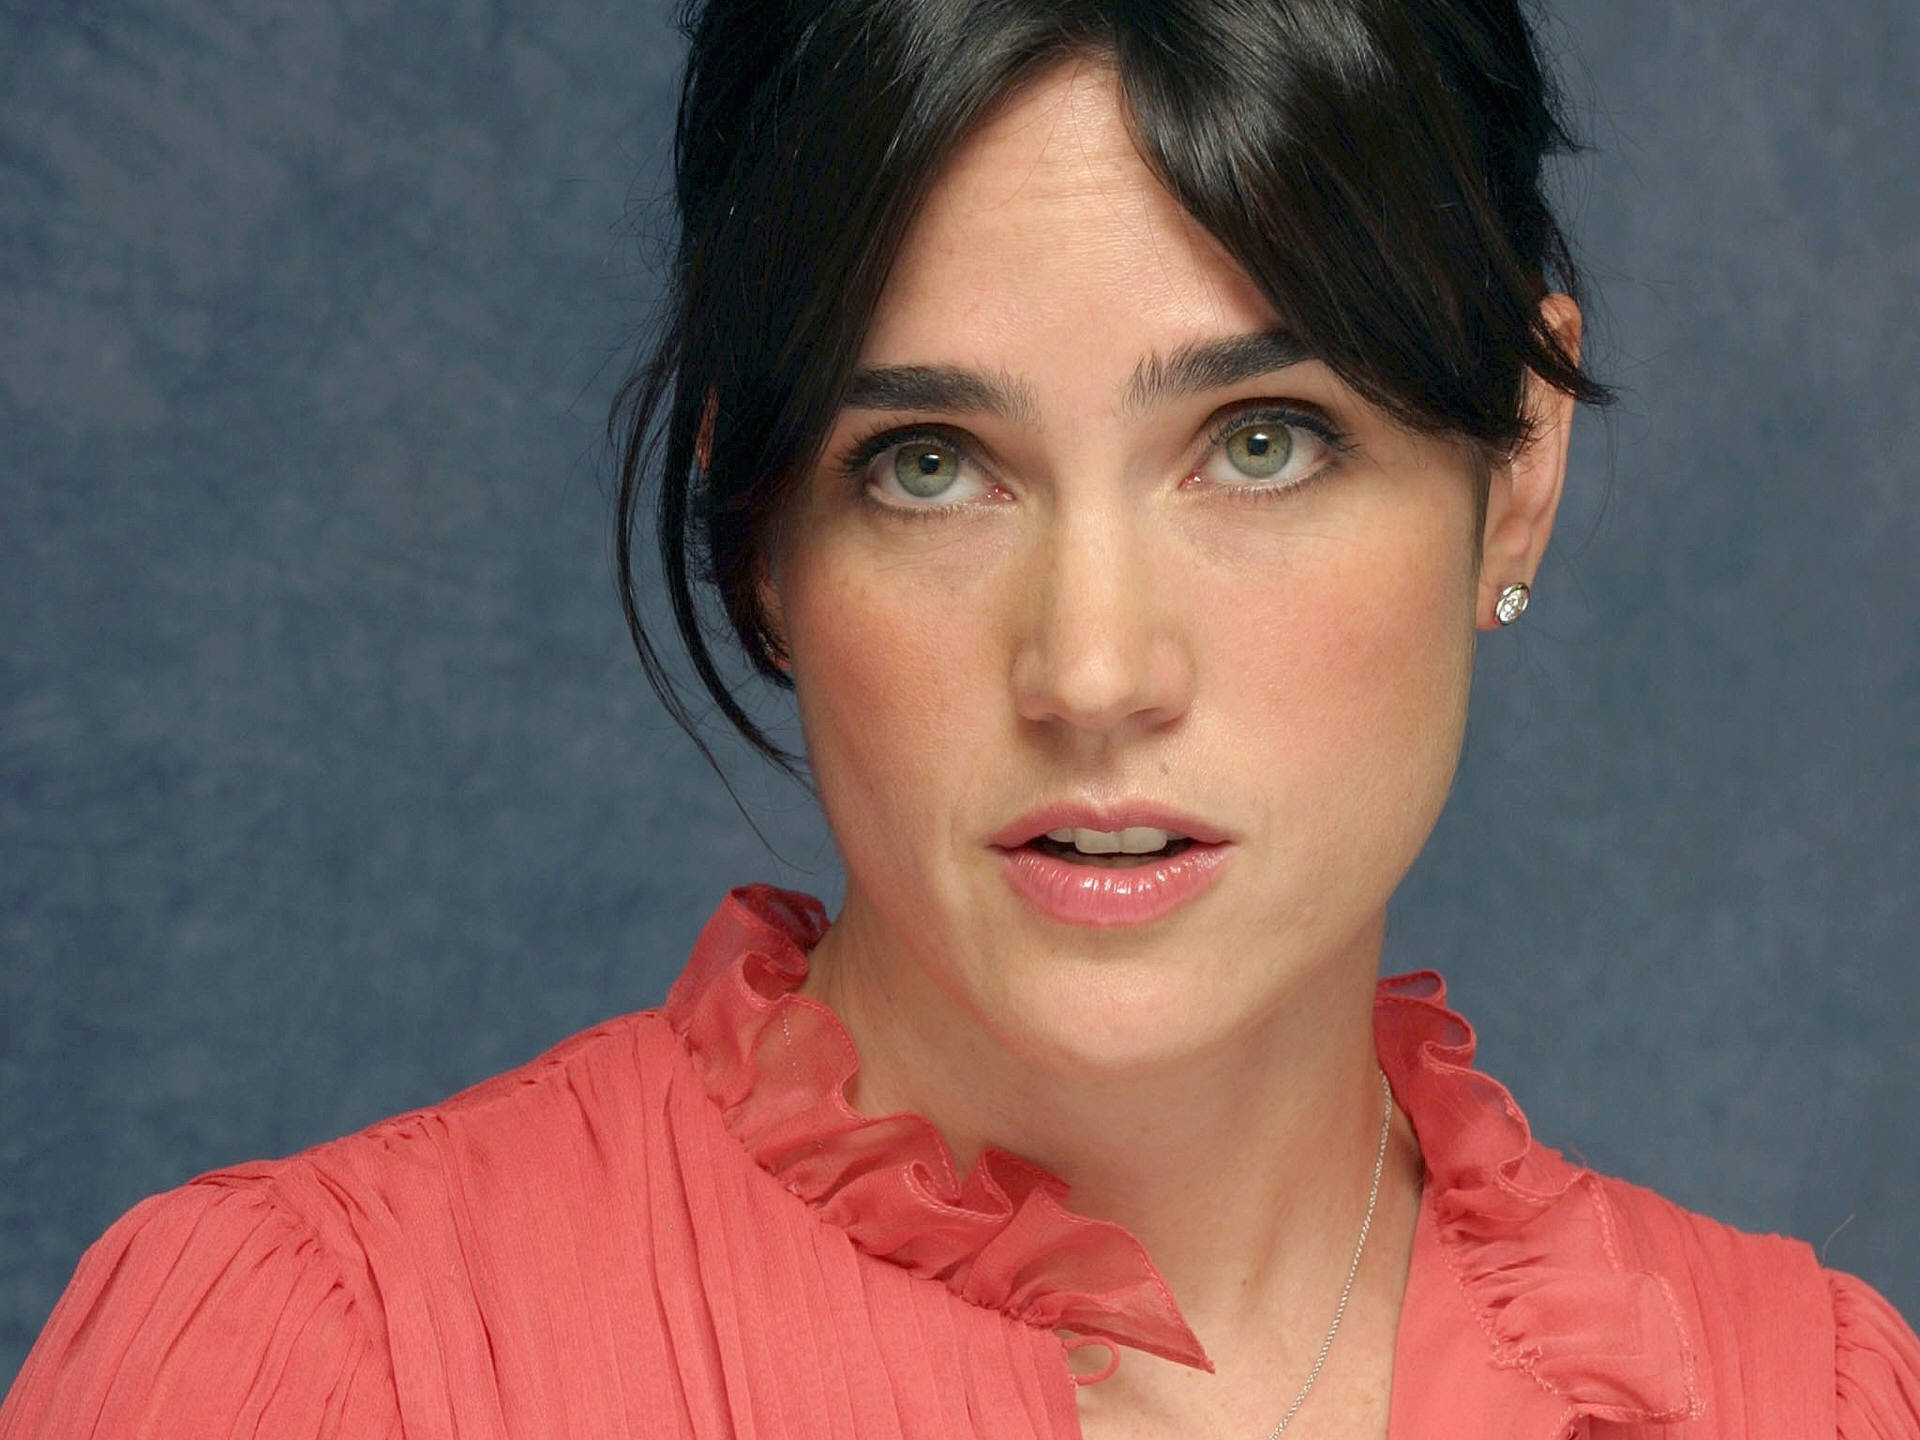 Pictures Of Jennifer Connelly